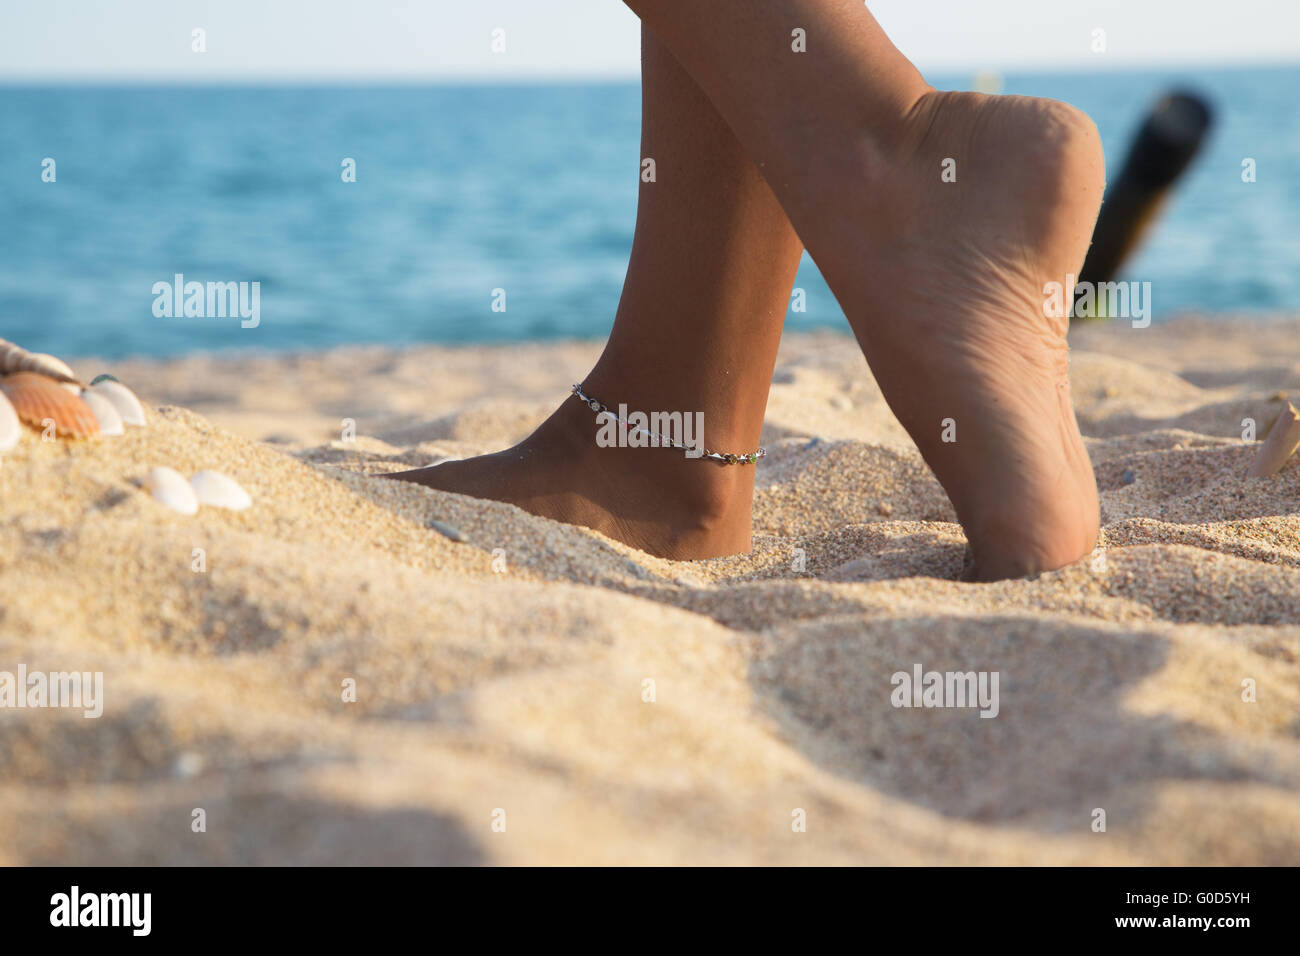 Feet of a girl, Bodyparts - Stock Image